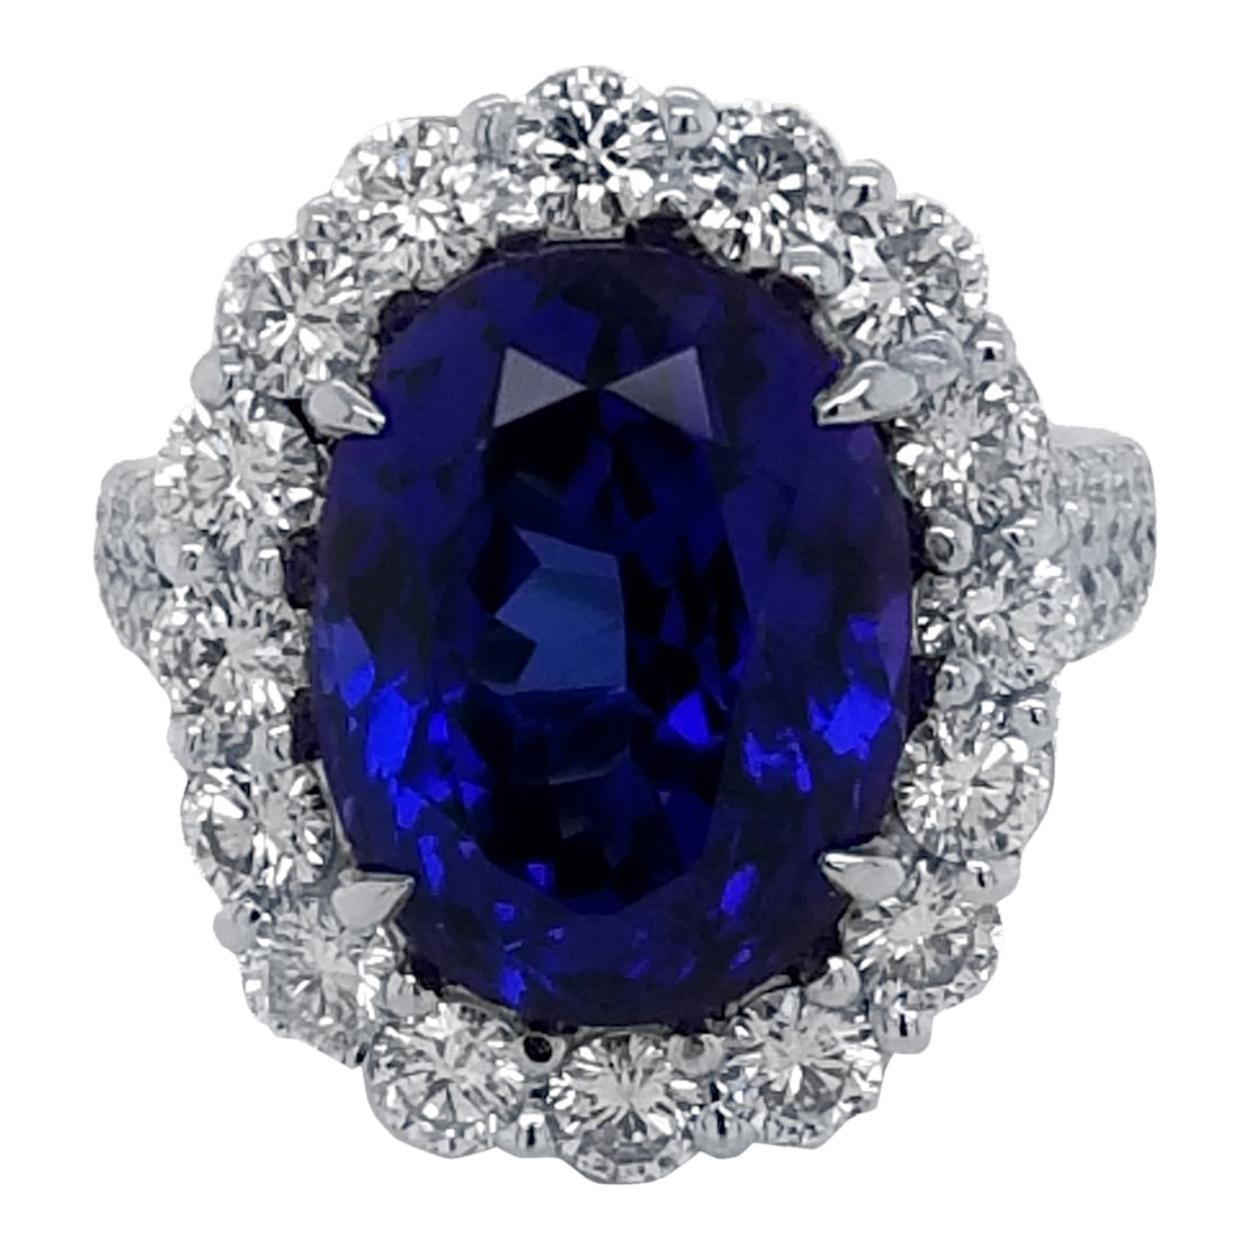 9.56 Carat Oval Shaped Tanzanite Split Shank Pave Set Engagement Ring with Halo